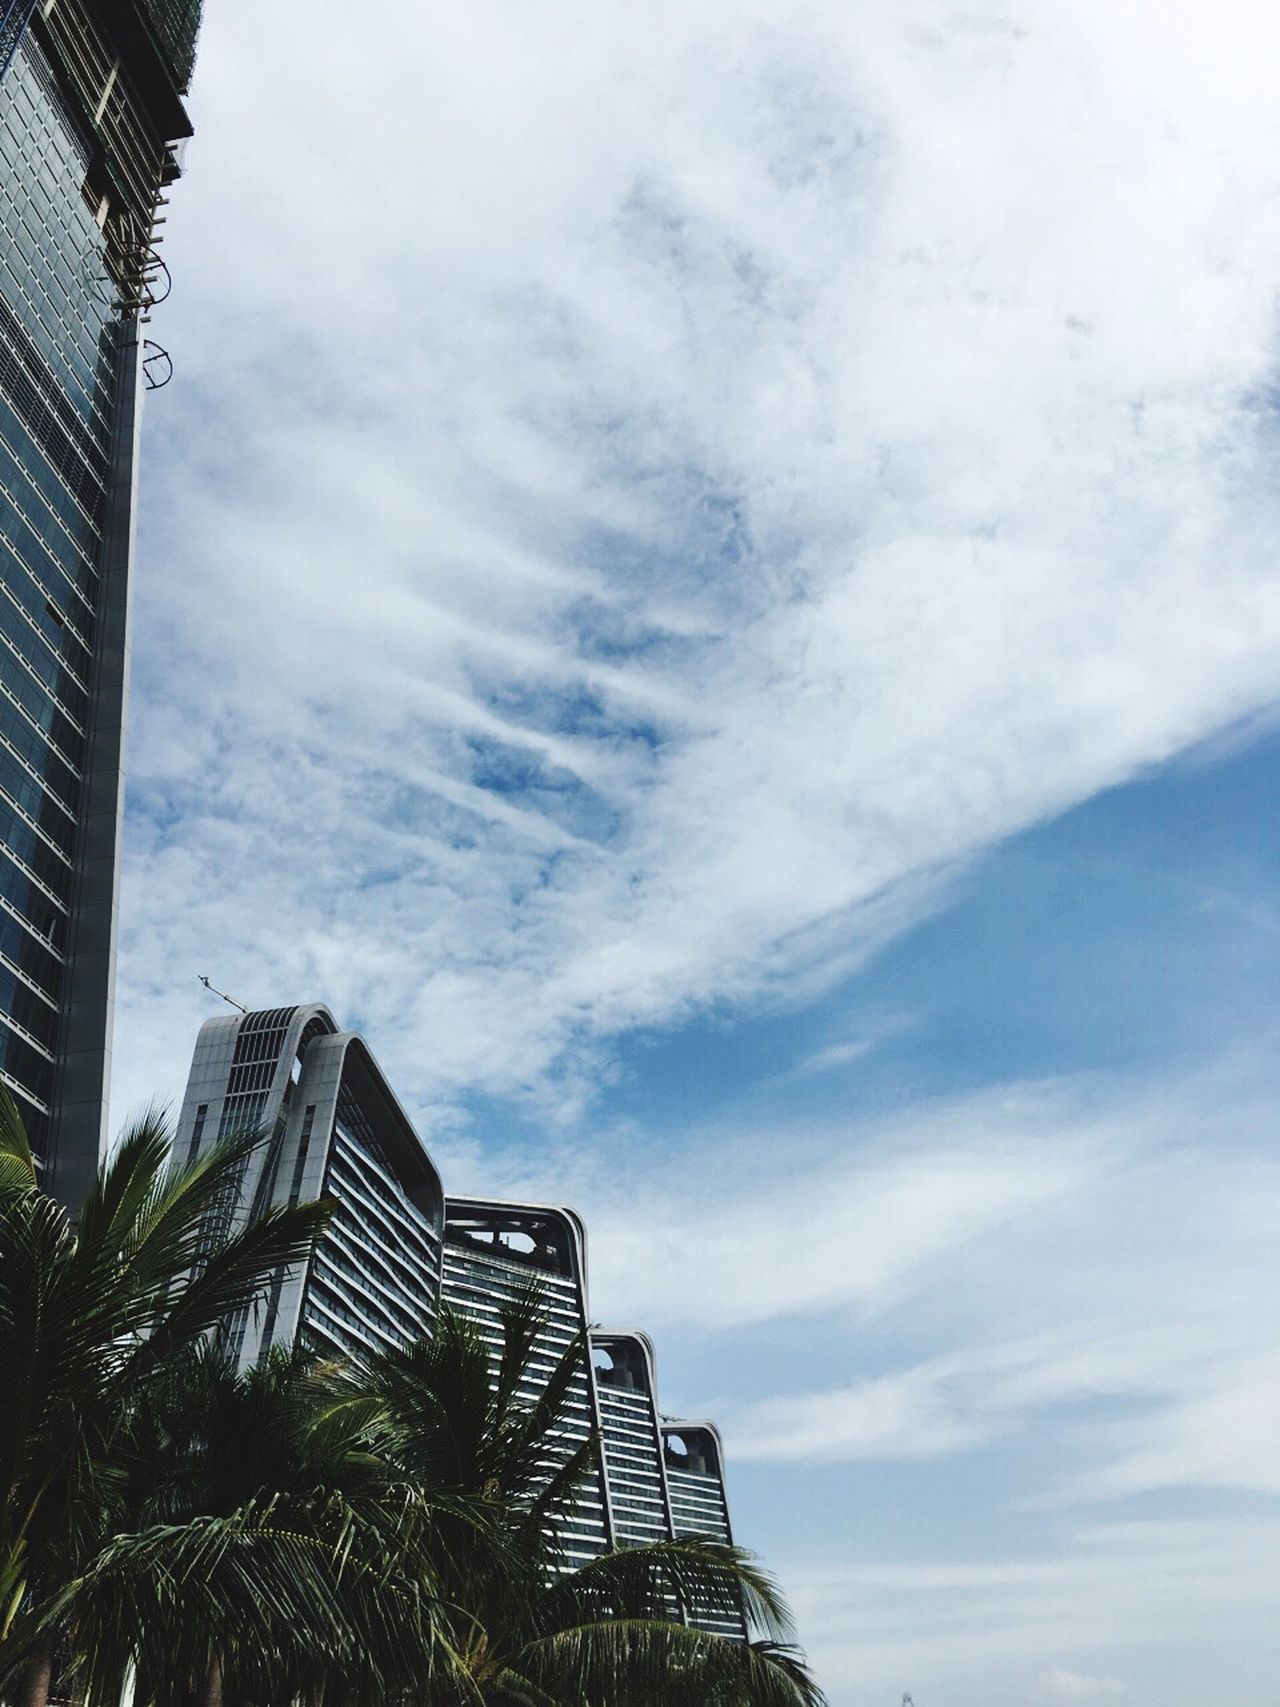 Zhuhai China Architecture Low Angle View Built Structure Sky Building Exterior Tall - High Office Building City Tower Modern Building Story Cloud Outdoors Cloud - Sky Day Place Of Work City Life Tall Development